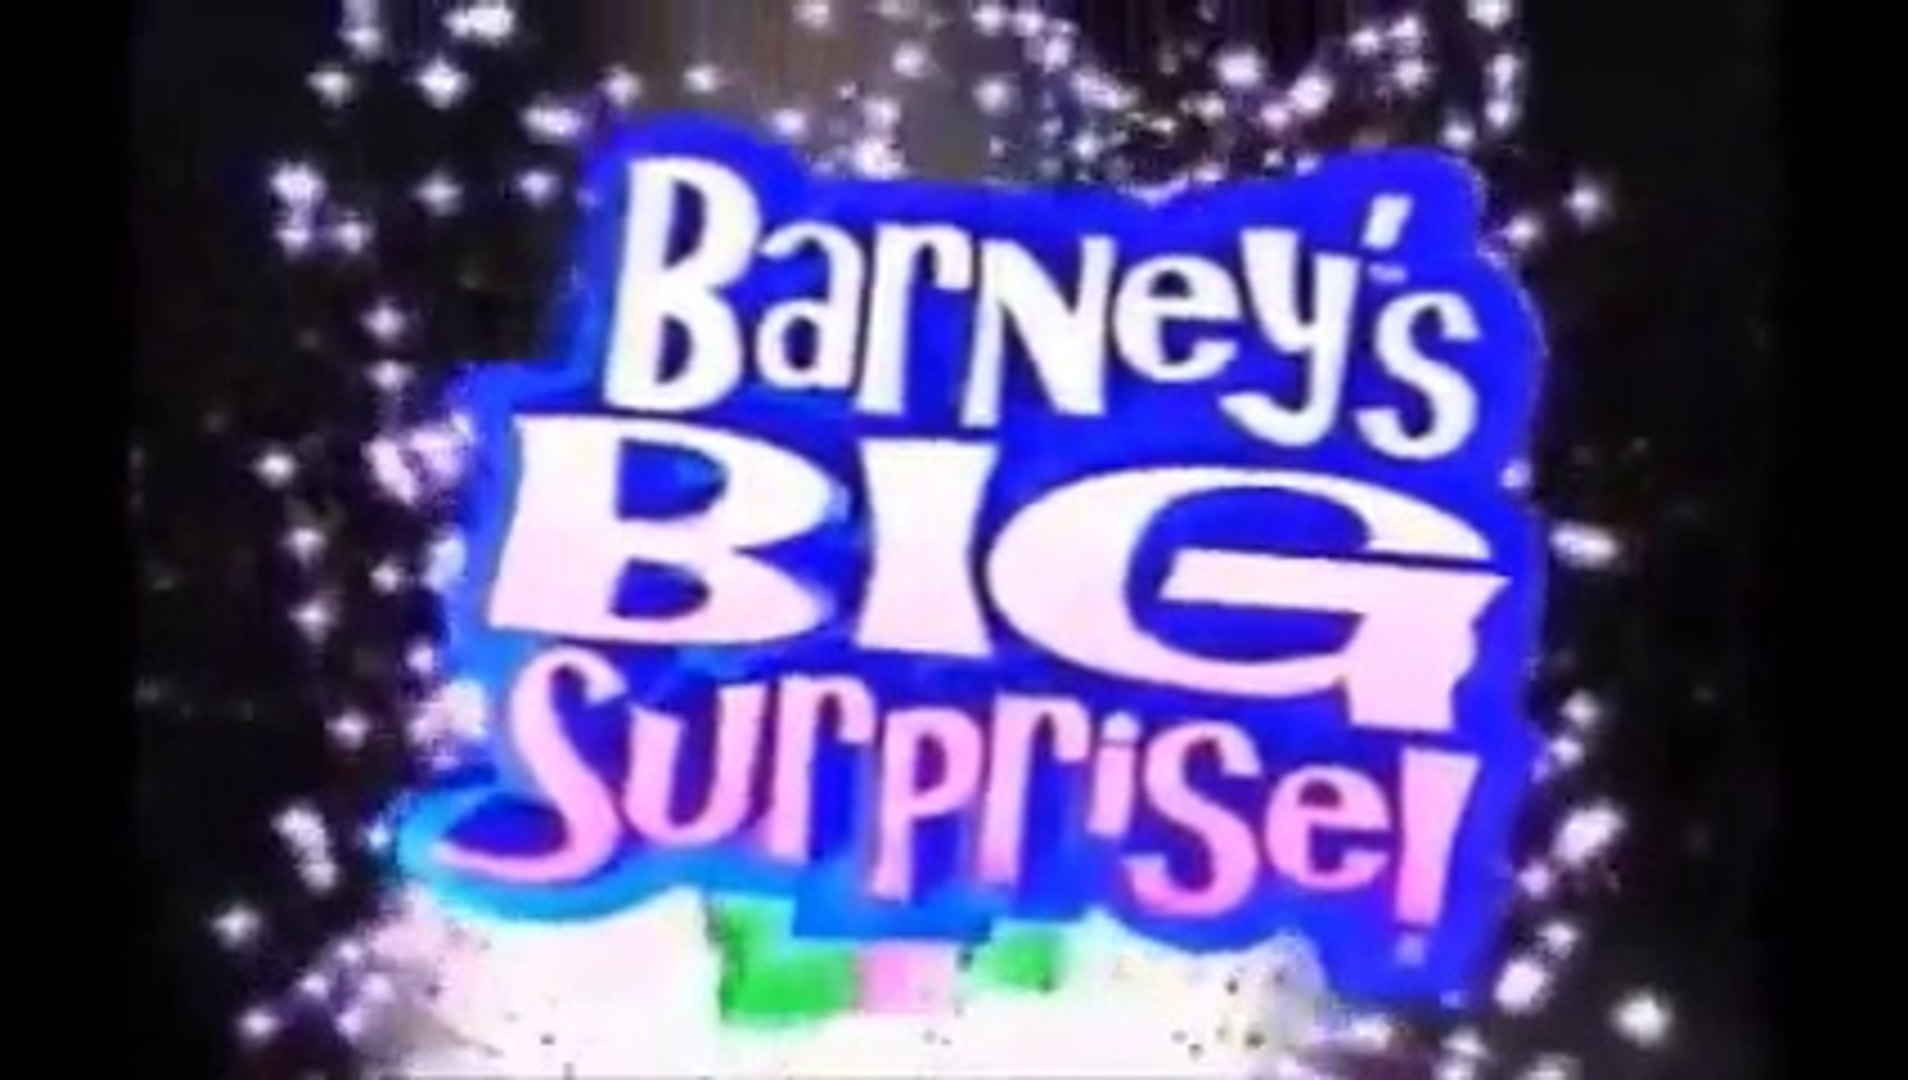 Barney's Big Surprise Part 1